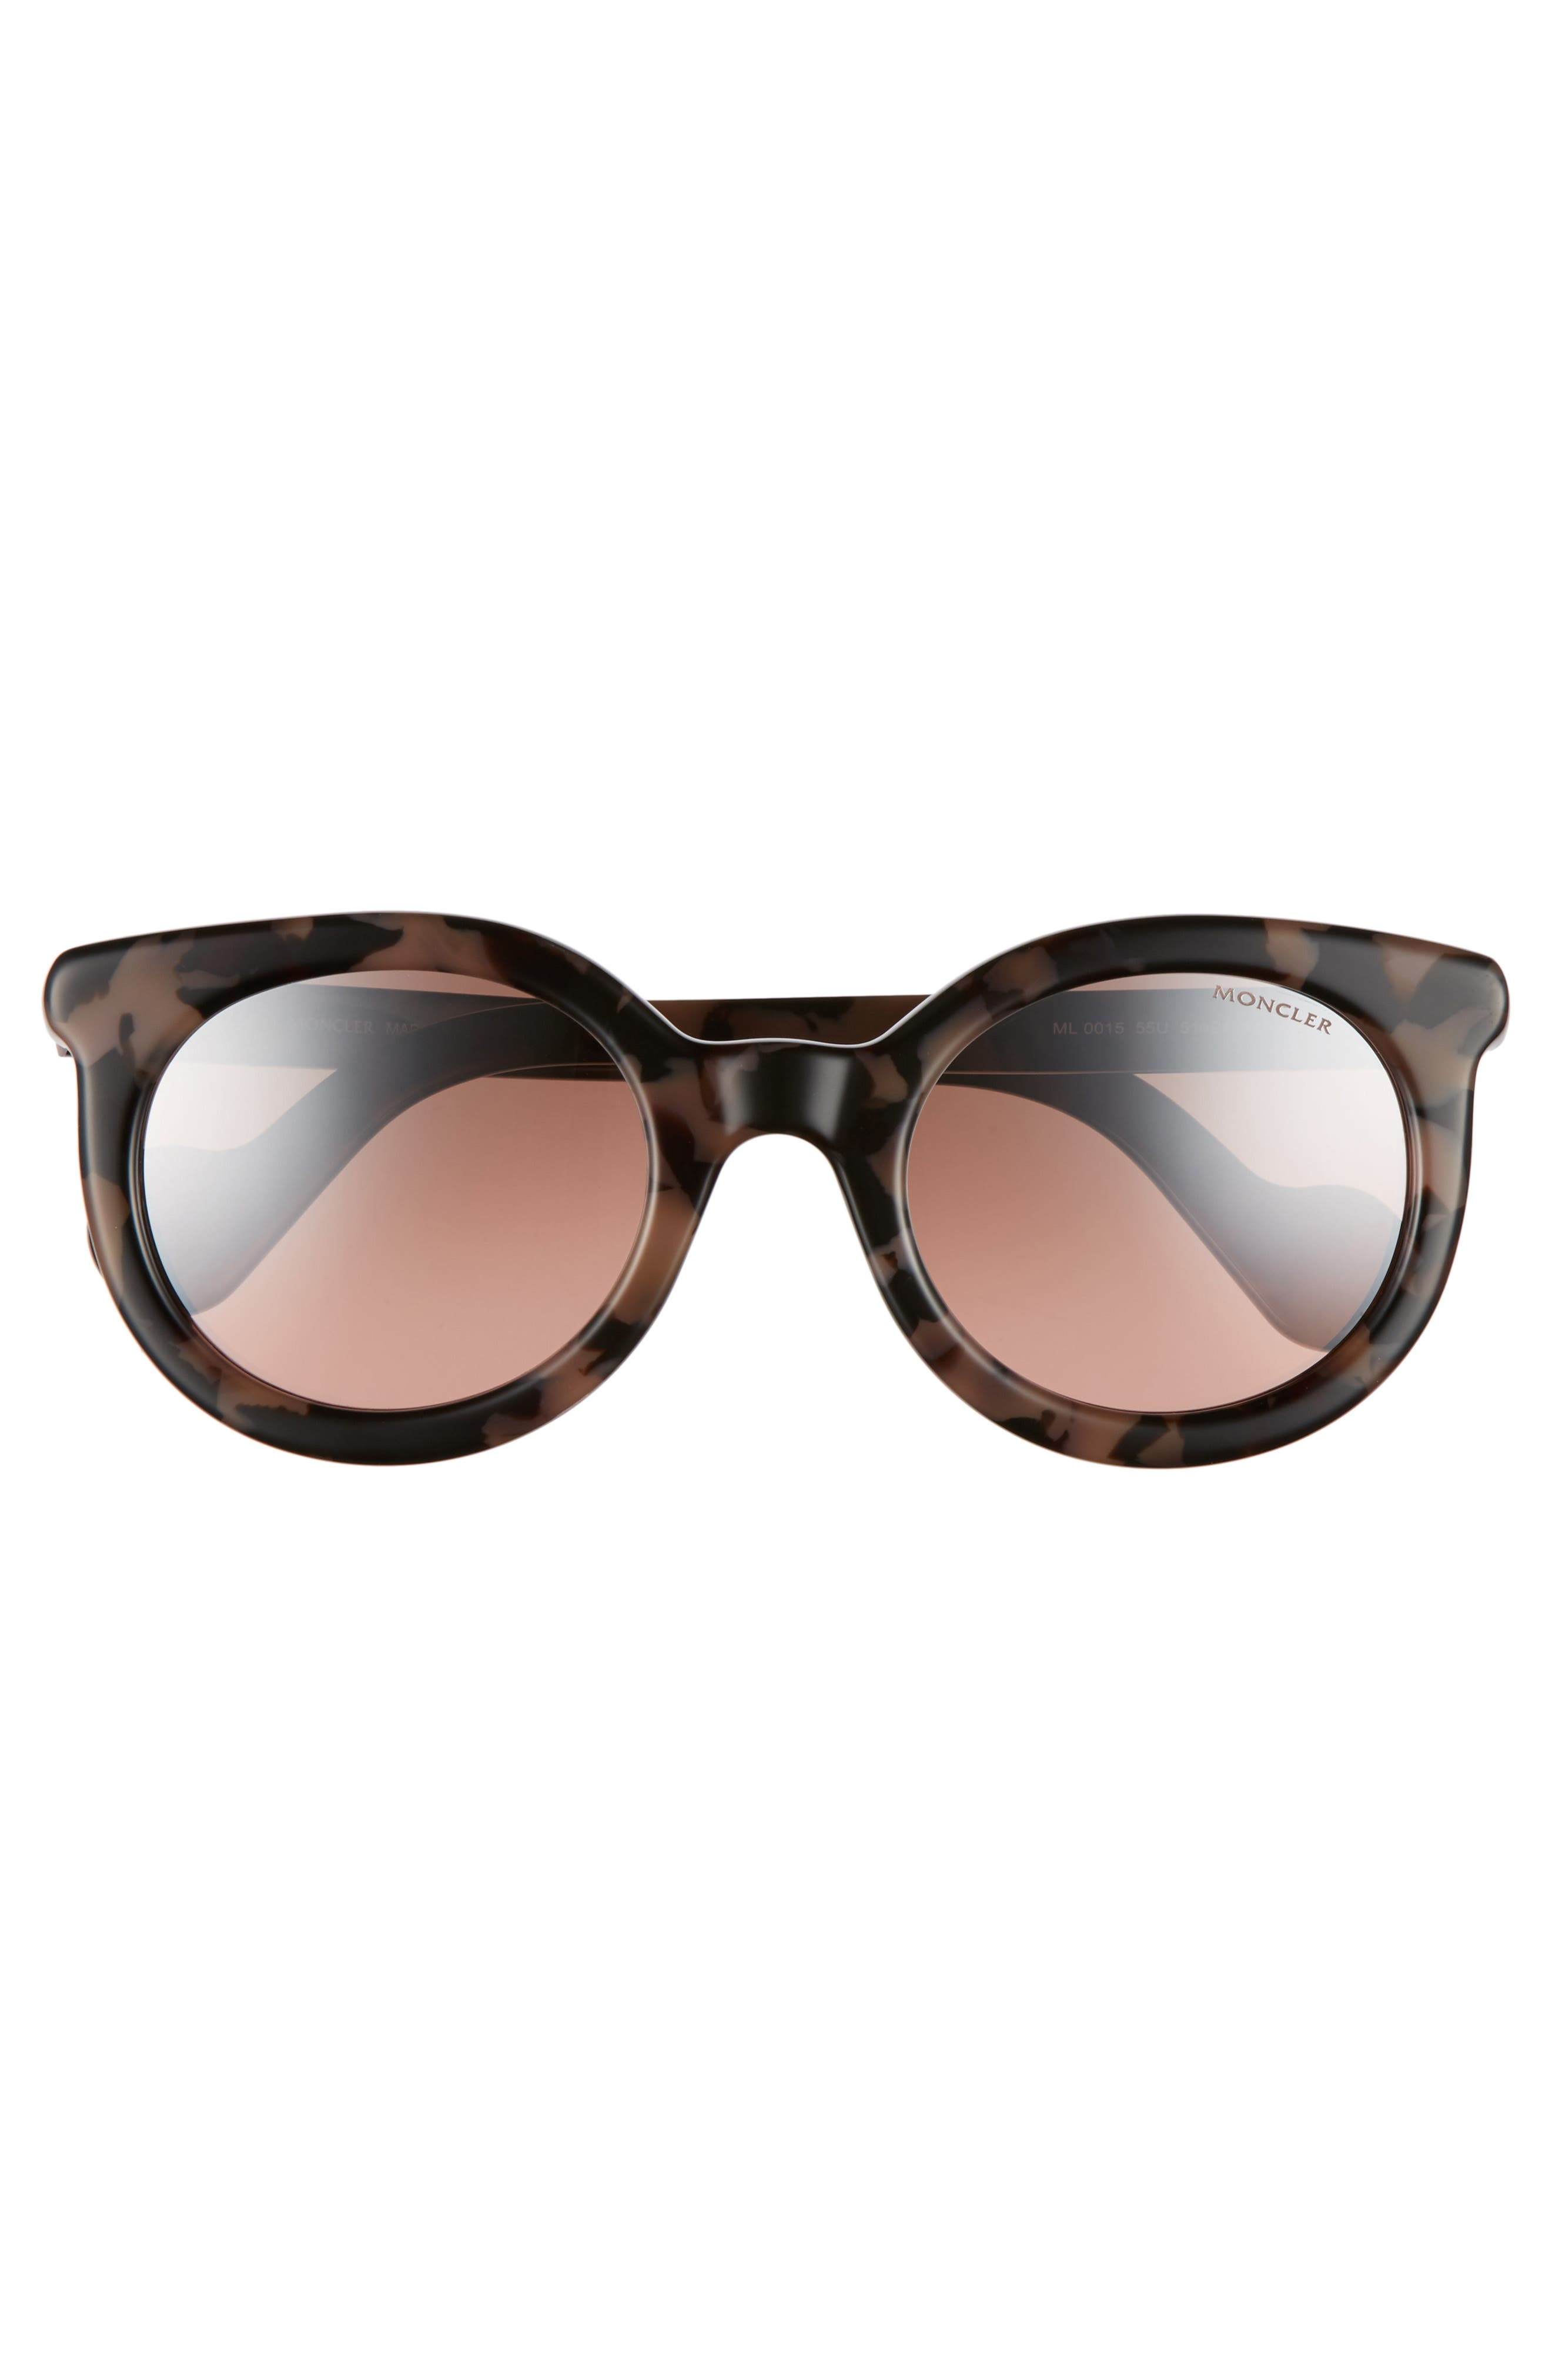 Alternate Image 2  - Moncler 51mm Sunglasses